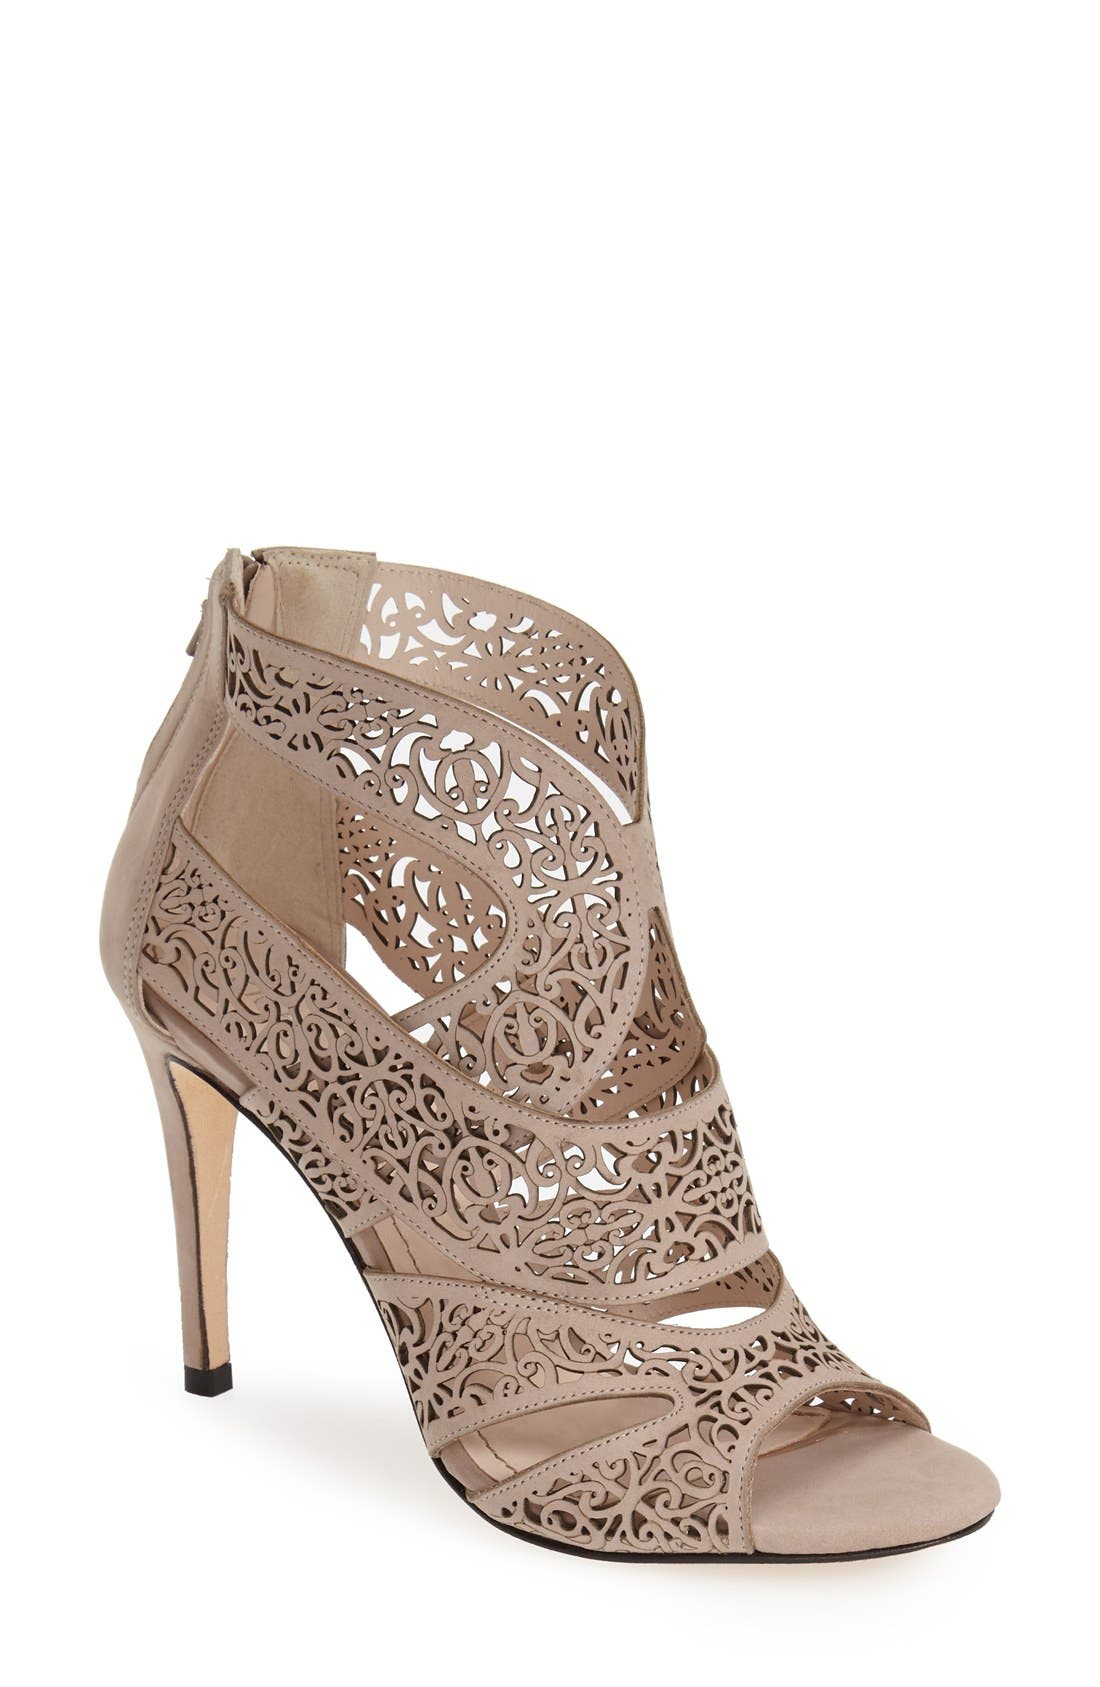 Alternate Image 1 Selected - Klub Nico 'Mallorca' Laser Cutout Sandal (Women)